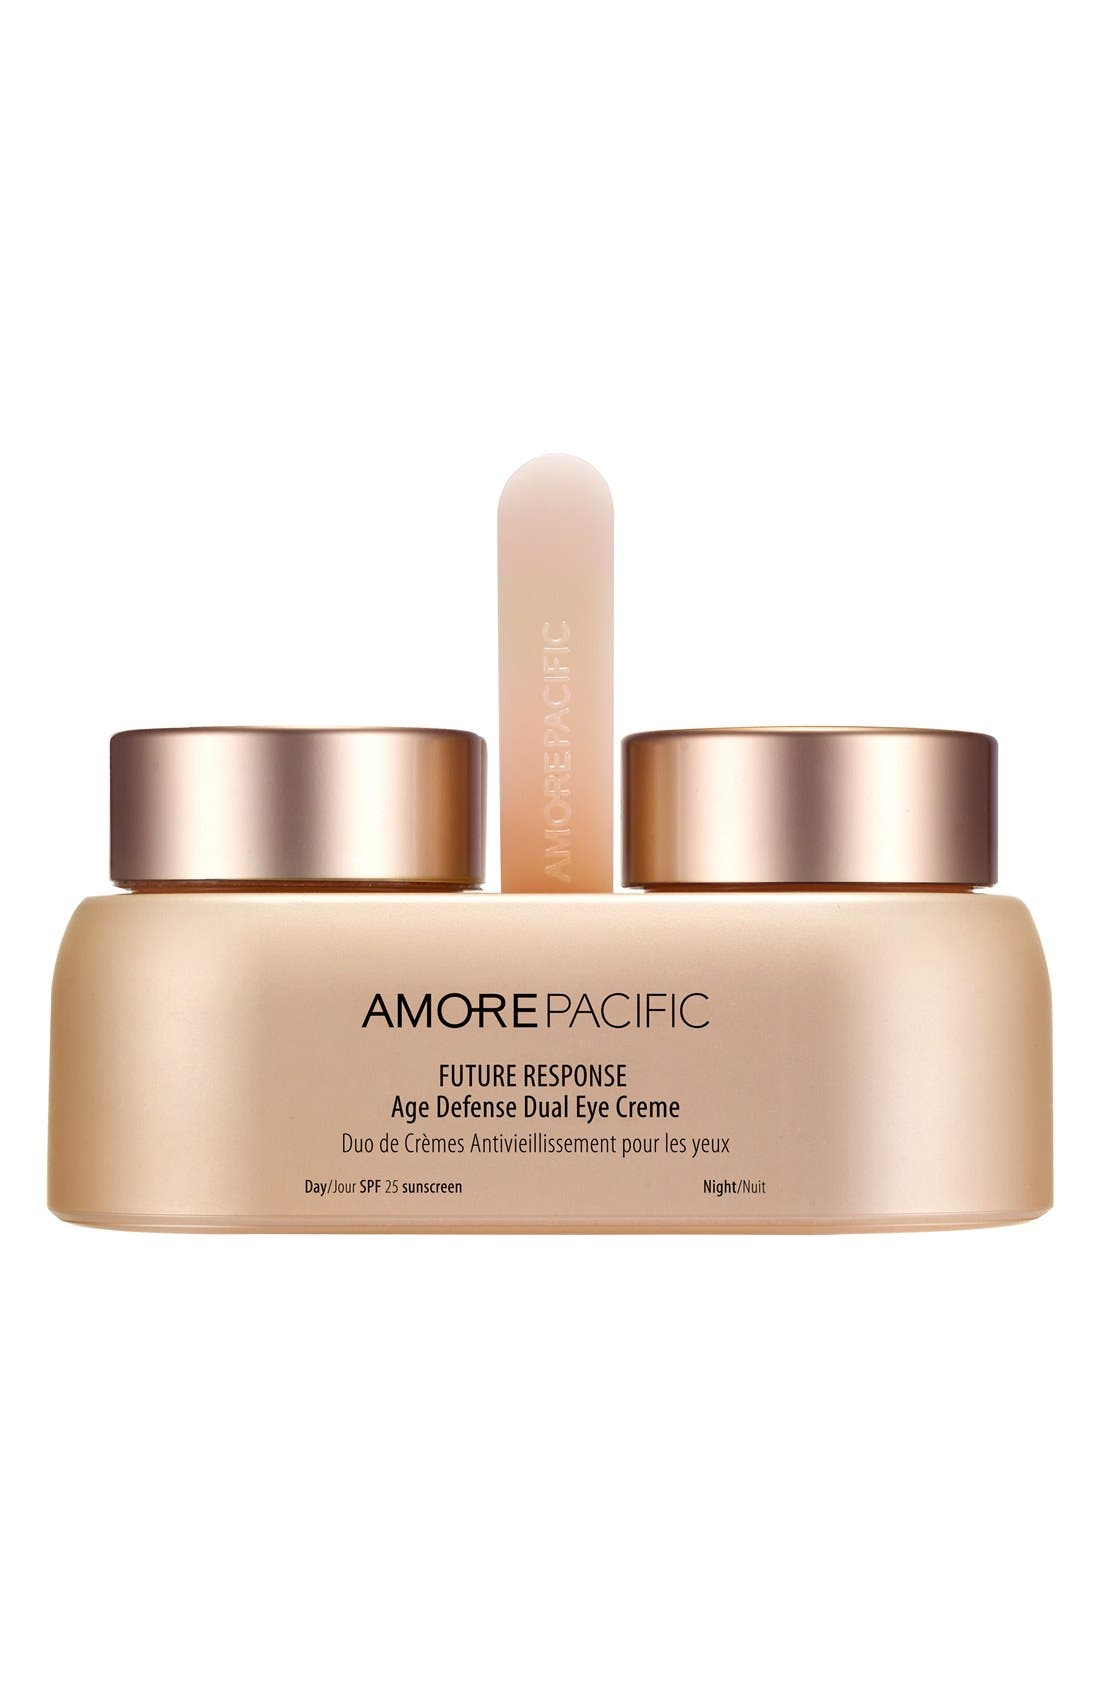 AMOREPACIFIC 'Future Response' Age Defense Dual Eye Creme